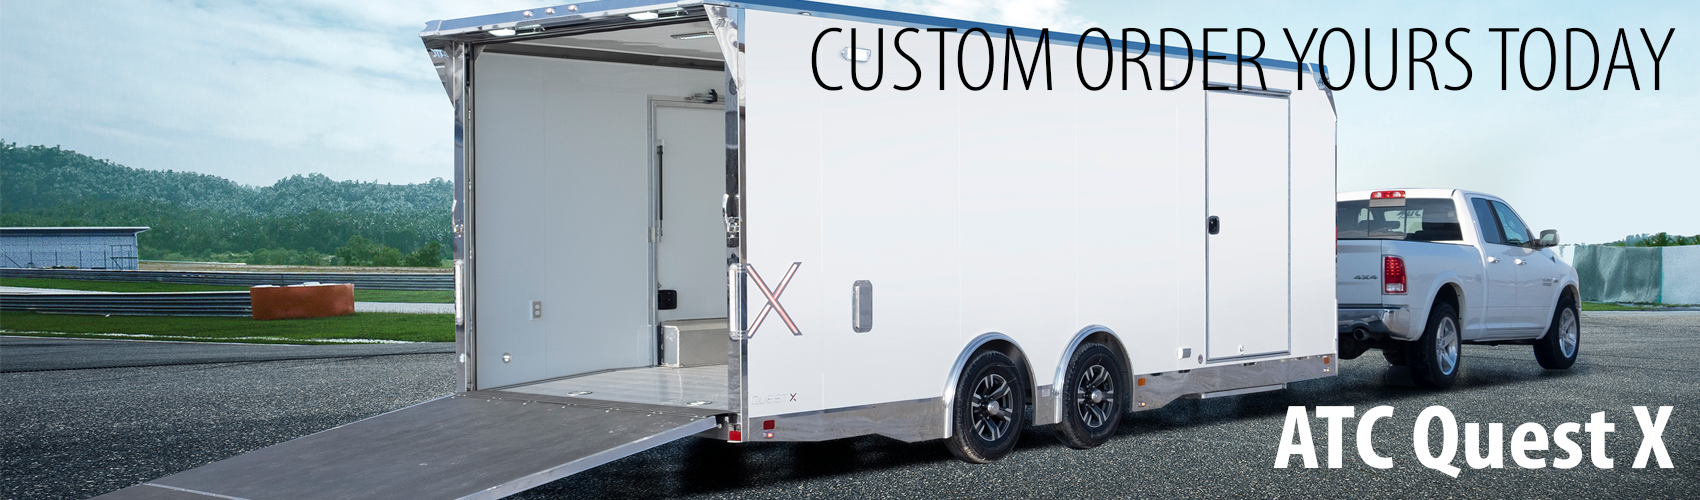 Home Cargo Trailers For Sale Cargo Trailer Sales In Pa New York New Jersey And Maryland